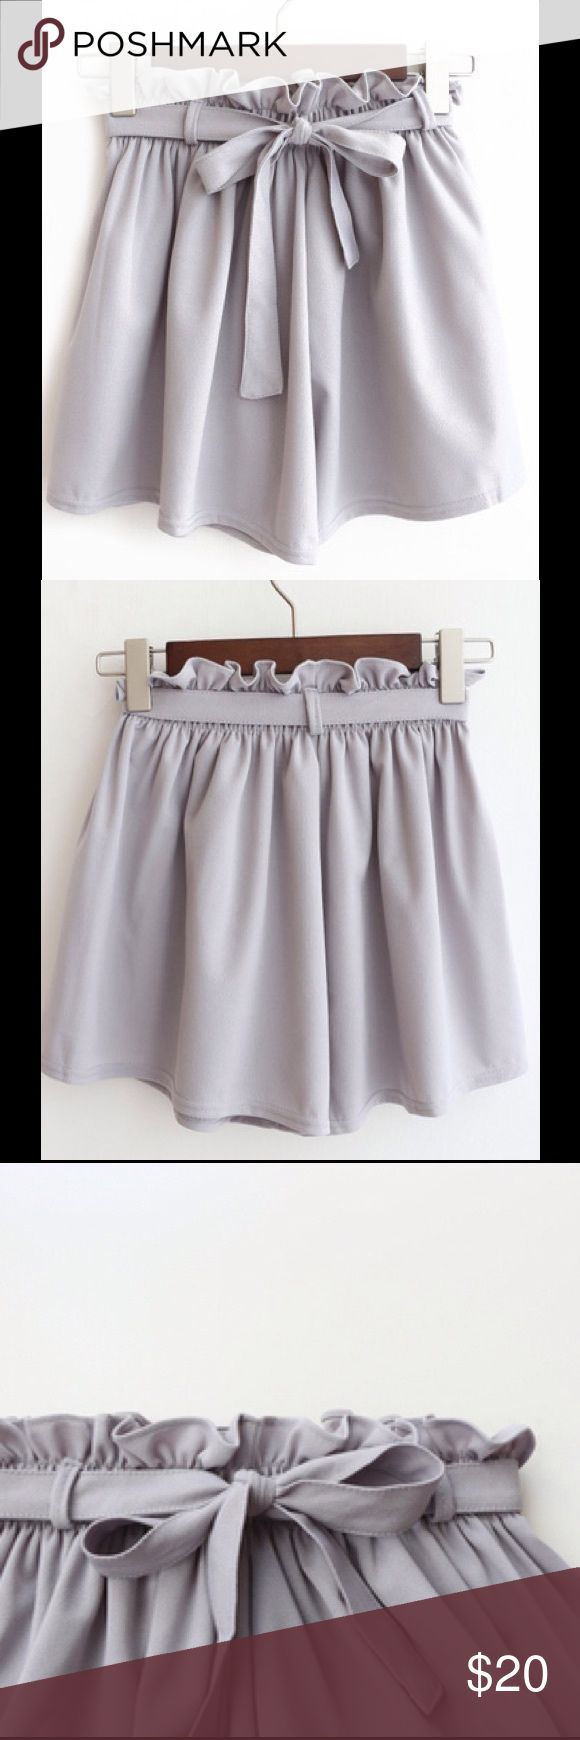 Last2️⃣! Gray Dressy Shorts Elastic Bow Tie Waist So cute! Flouncy gray dress shorts in a comfy, opaque chiffon-like material with a tie belt. The easily accommodating elastic waist fits comfortably between size S to M (size 2 up to 8). Just as cute and feminine as a skirt! Boutique - new in package, but never had tags. No trades/holds. Bundle for 10% off! Shorts